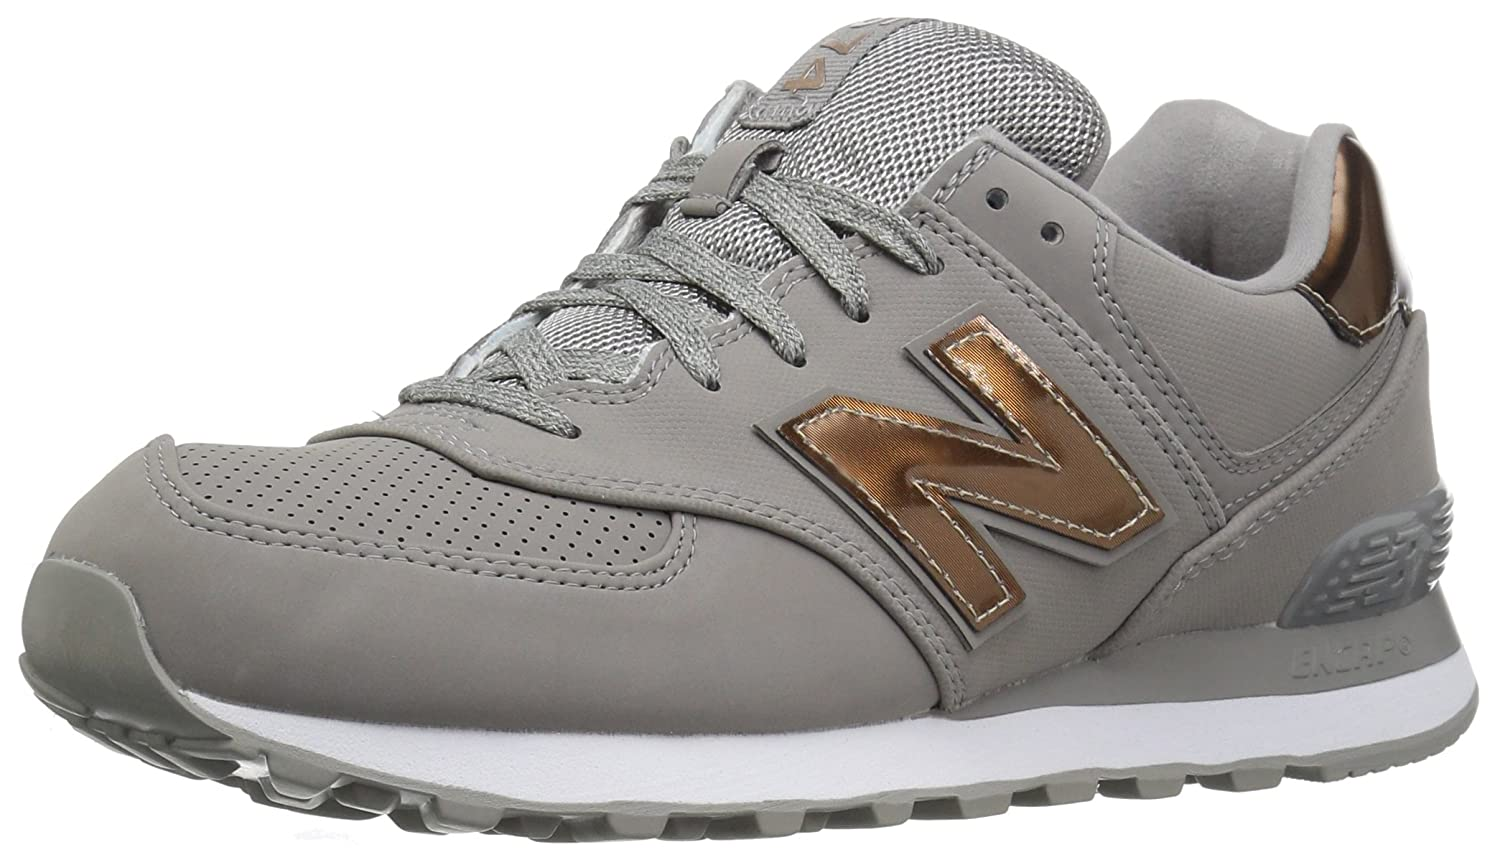 New Balance Women's 574v1 Varsity Sport Sneaker B01NBA9T34 9 D US|Grey/Metallic Silver